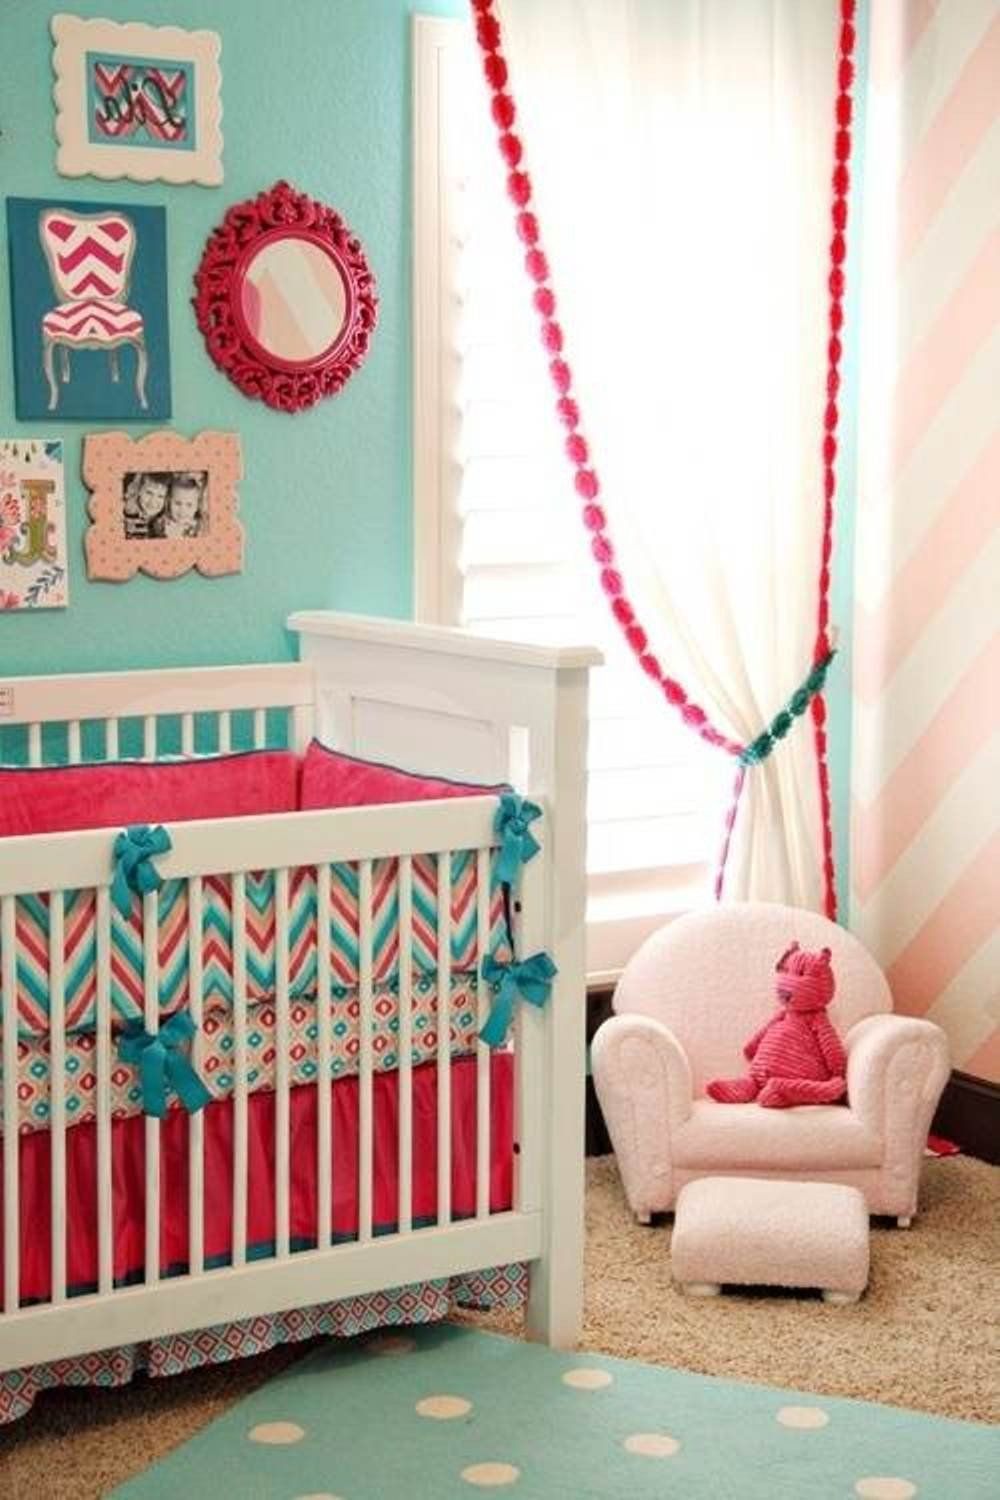 Baby Girls Room Decor Ideas Awesome 25 Baby Bedroom Design Ideas for Your Cutie Pie